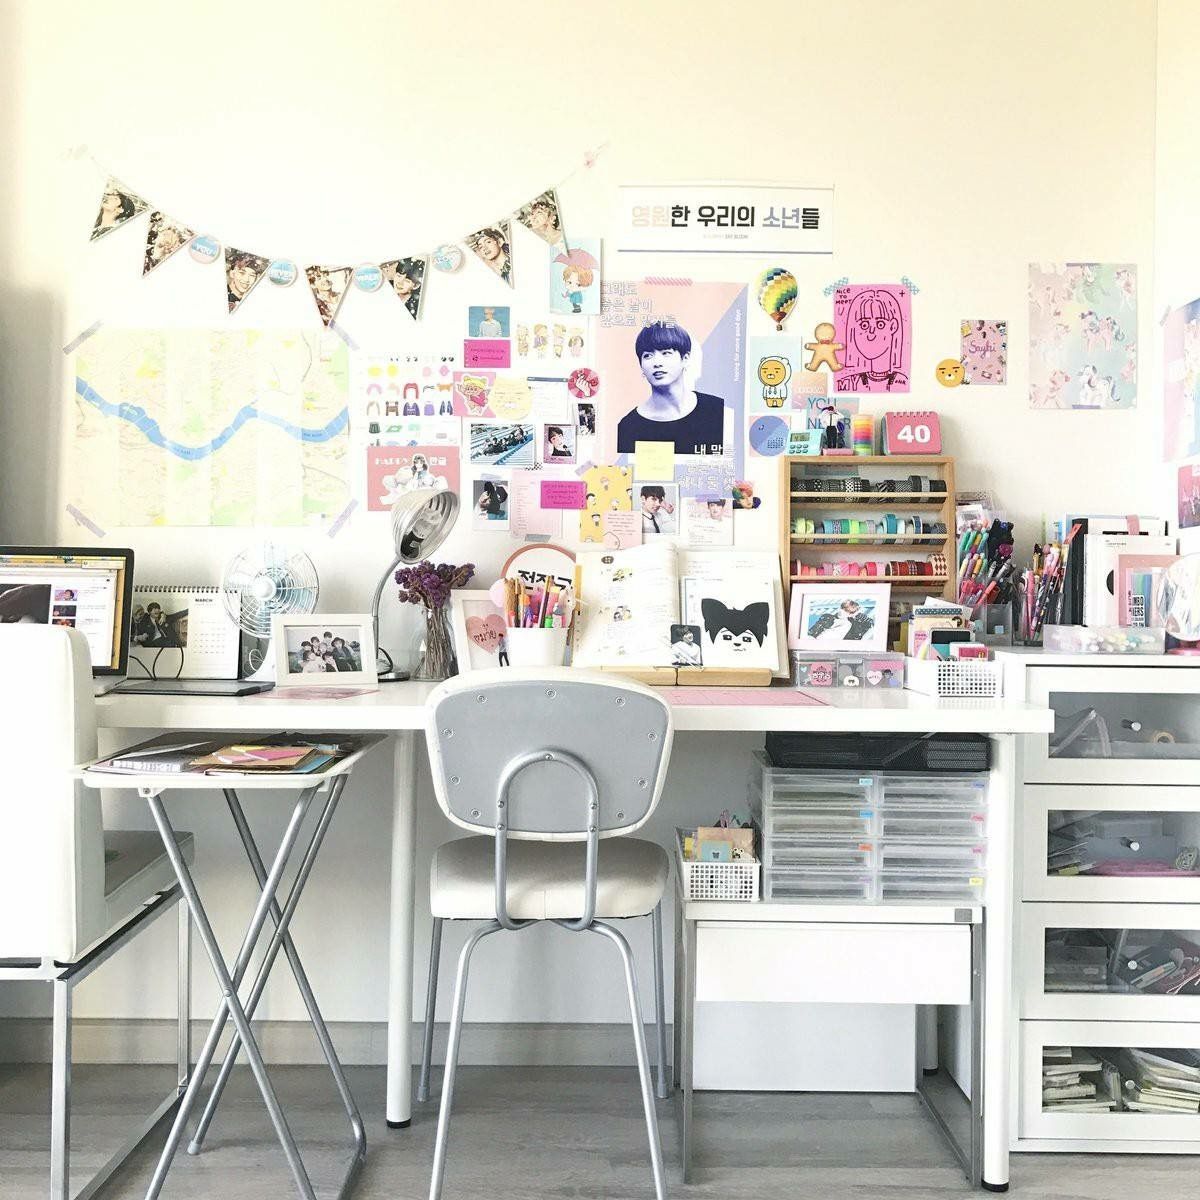 Kpop Bedroom Tumblr Pin By Siminxlim On Bedroom Idea In 2018 Pinterest